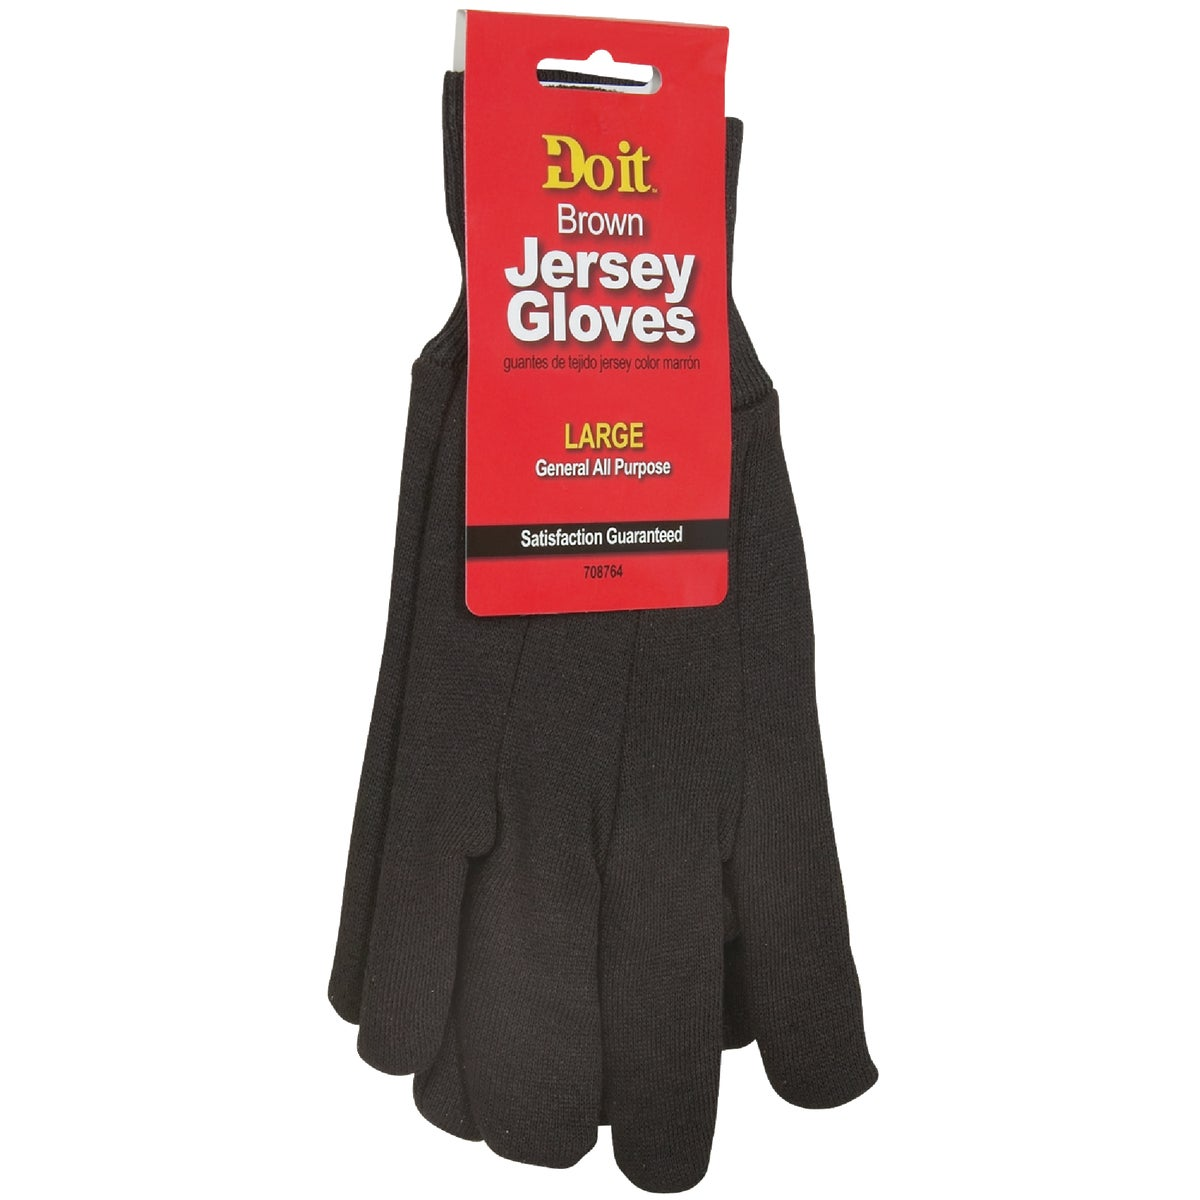 LRG BRN JERSEY GLOVE - 708764 by Do it Best